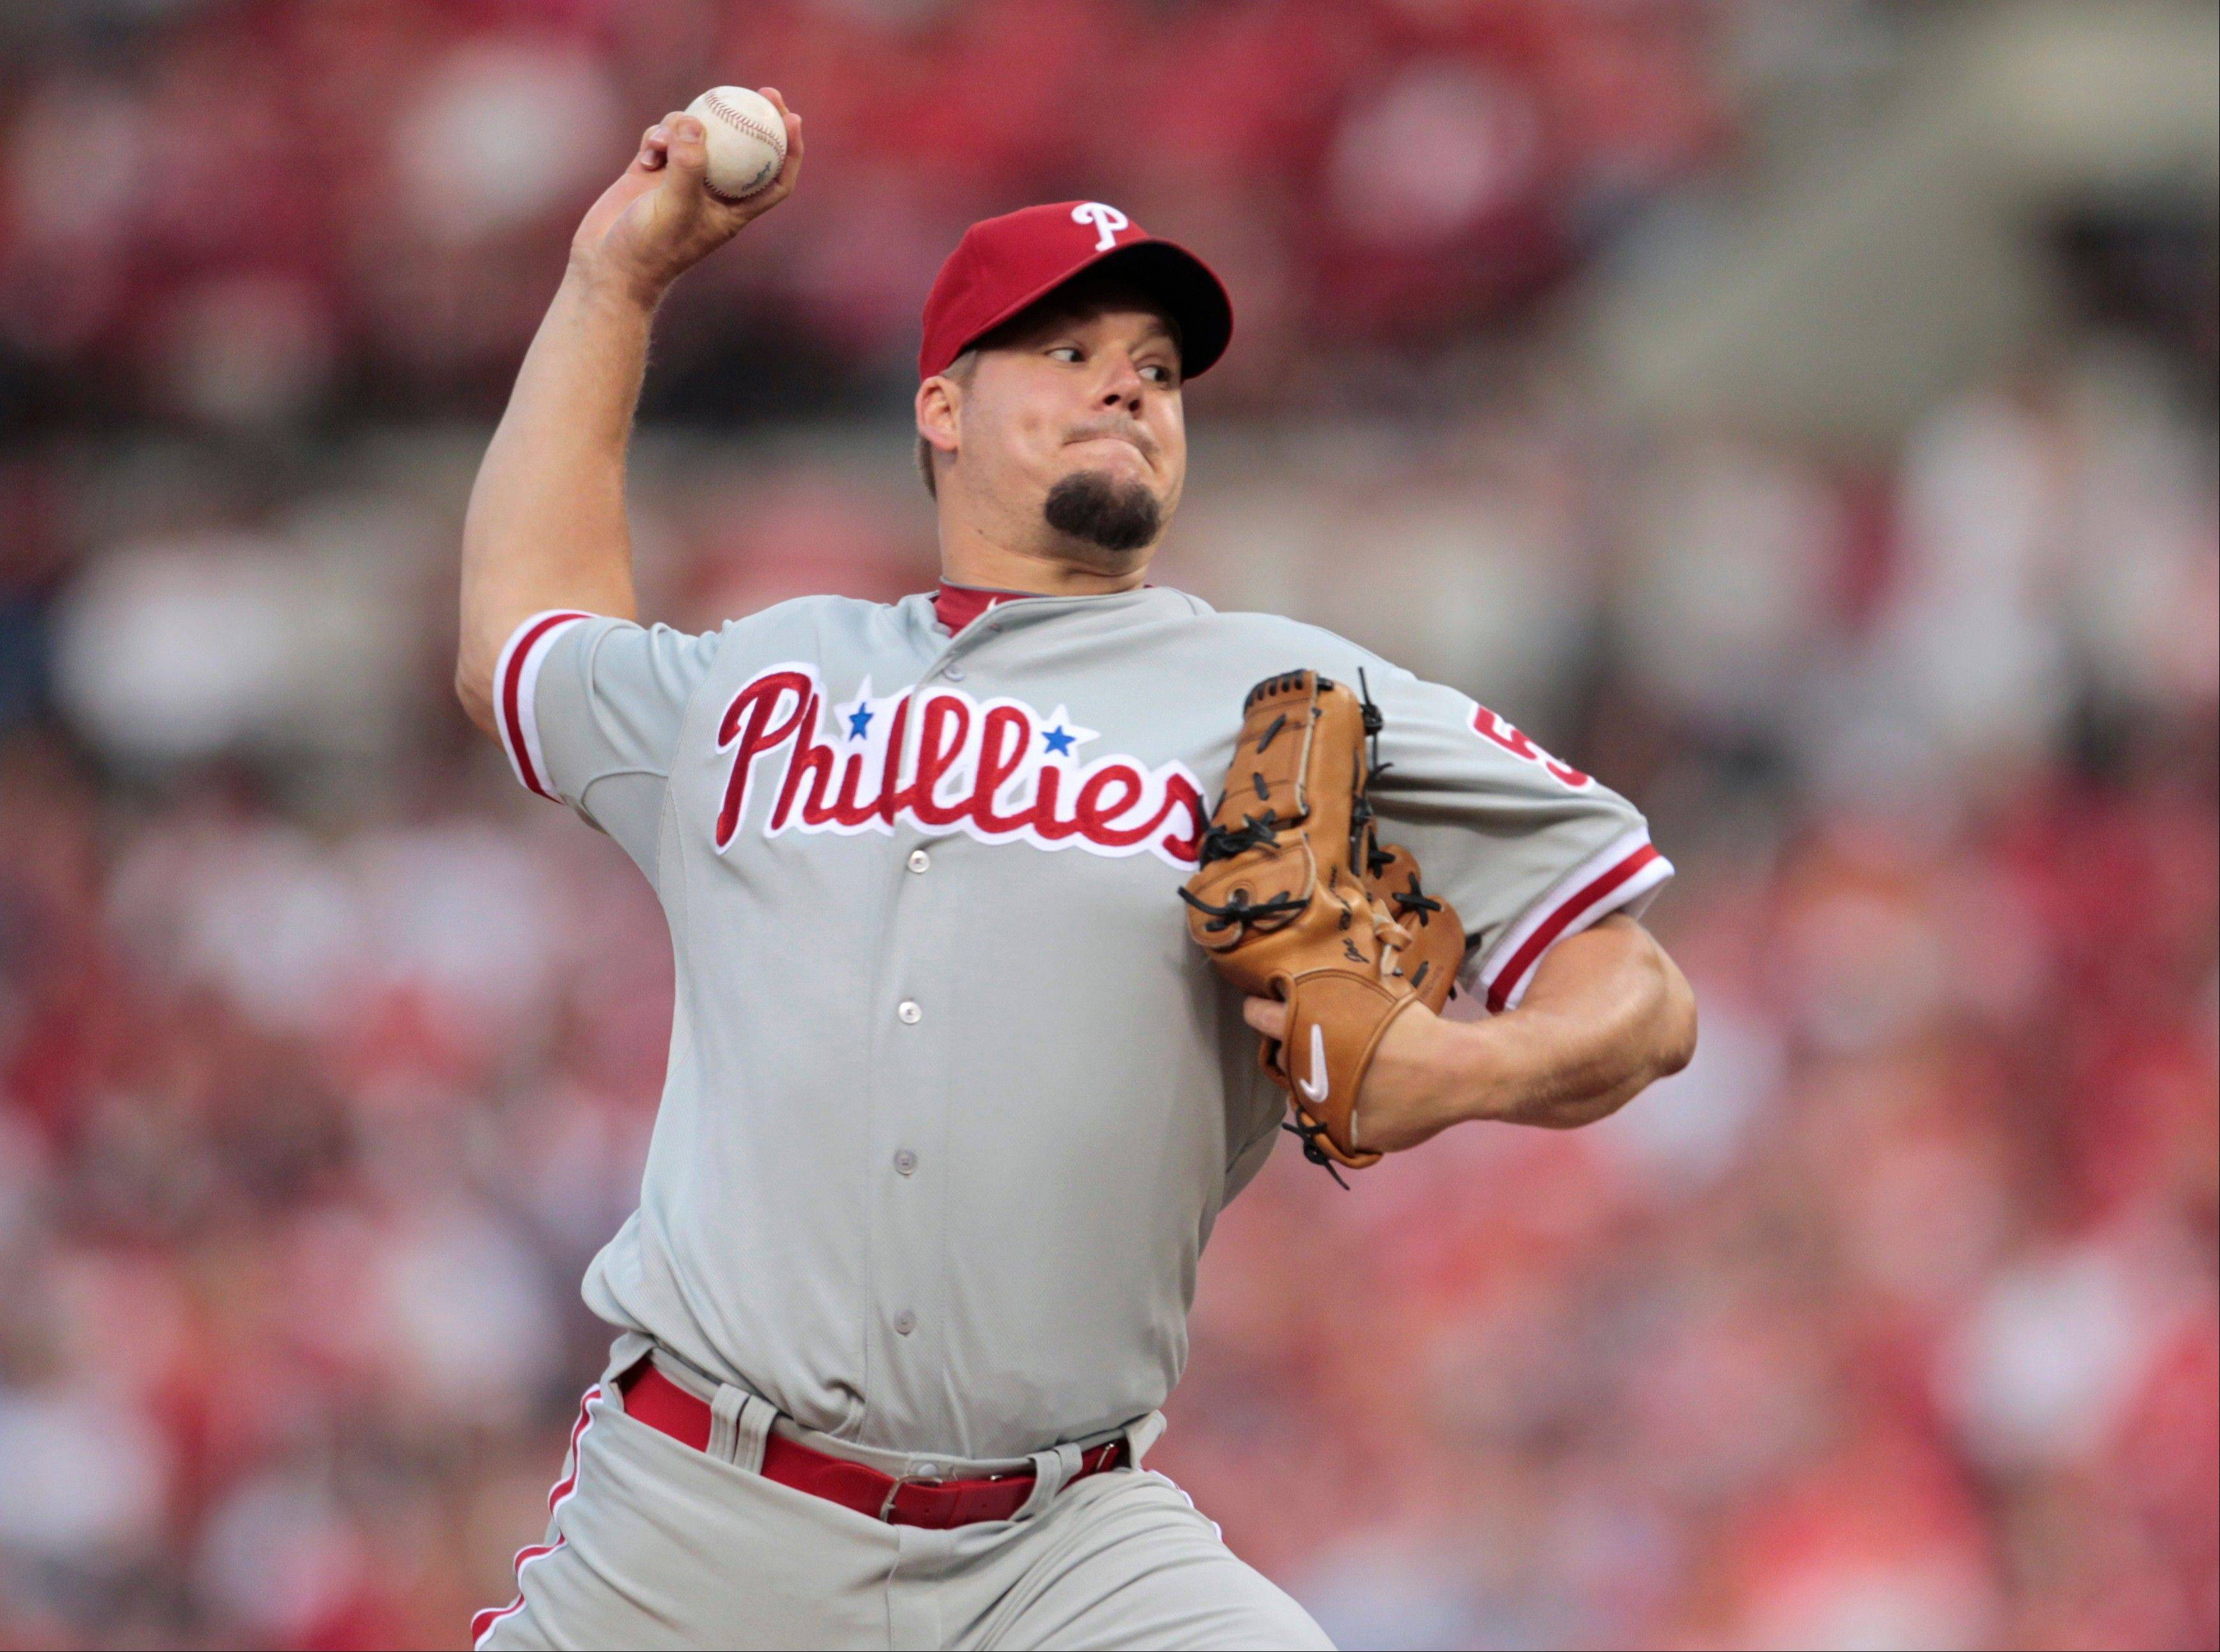 Phillies starting pitcher Joe Blanton was traded to the Dodgers on Friday after Los Angeles claimed him on waivers. Blanton will join outfielder Shane Victorino, who was sent from the Phillies to Los Angeles on Tuesday.